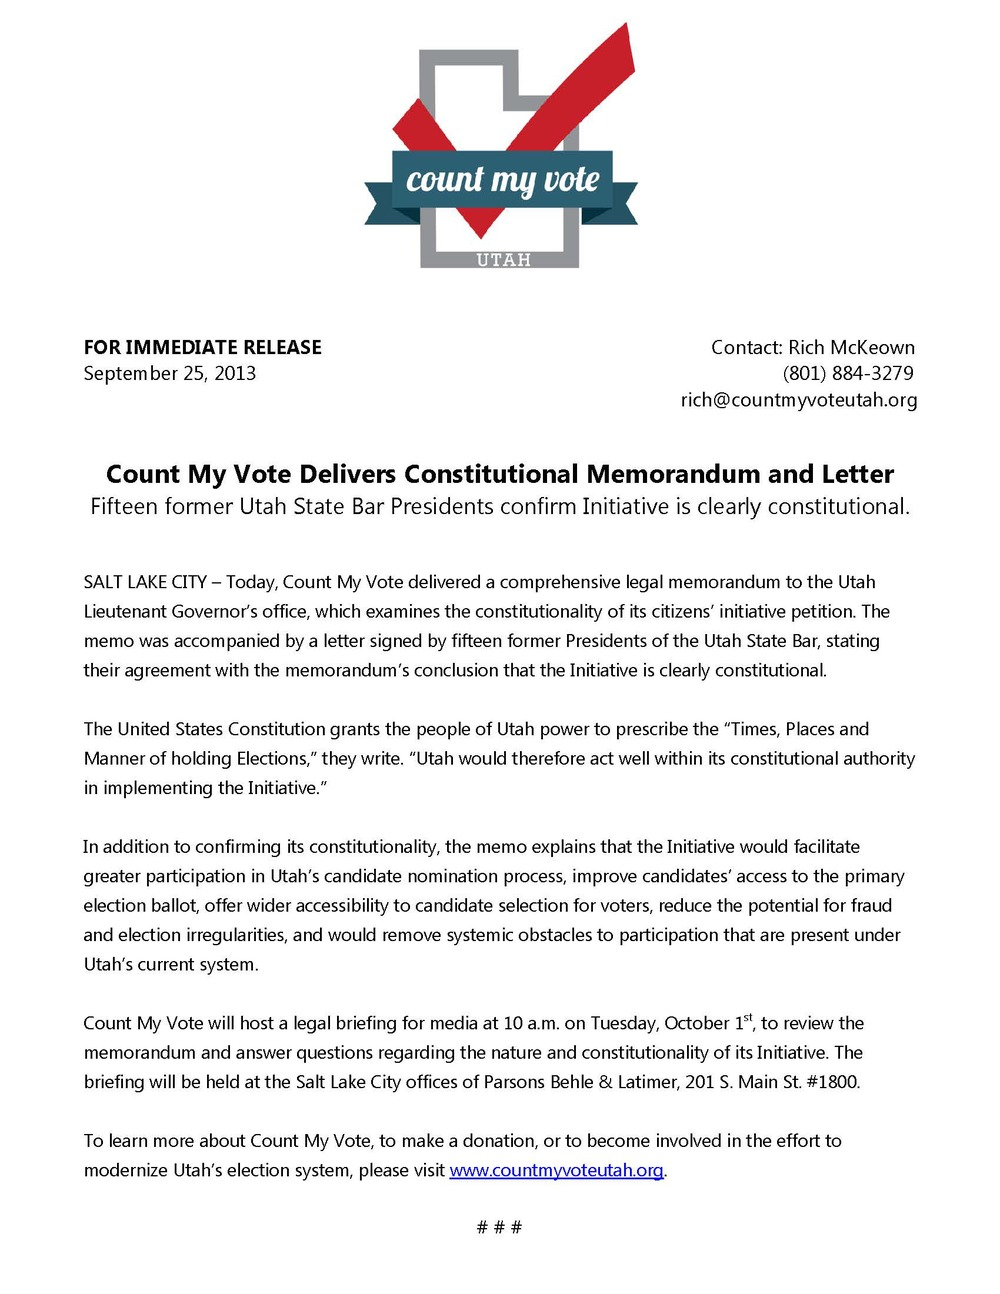 Count My Vote Delivers Constitutional Memorandum and Letter.jpg